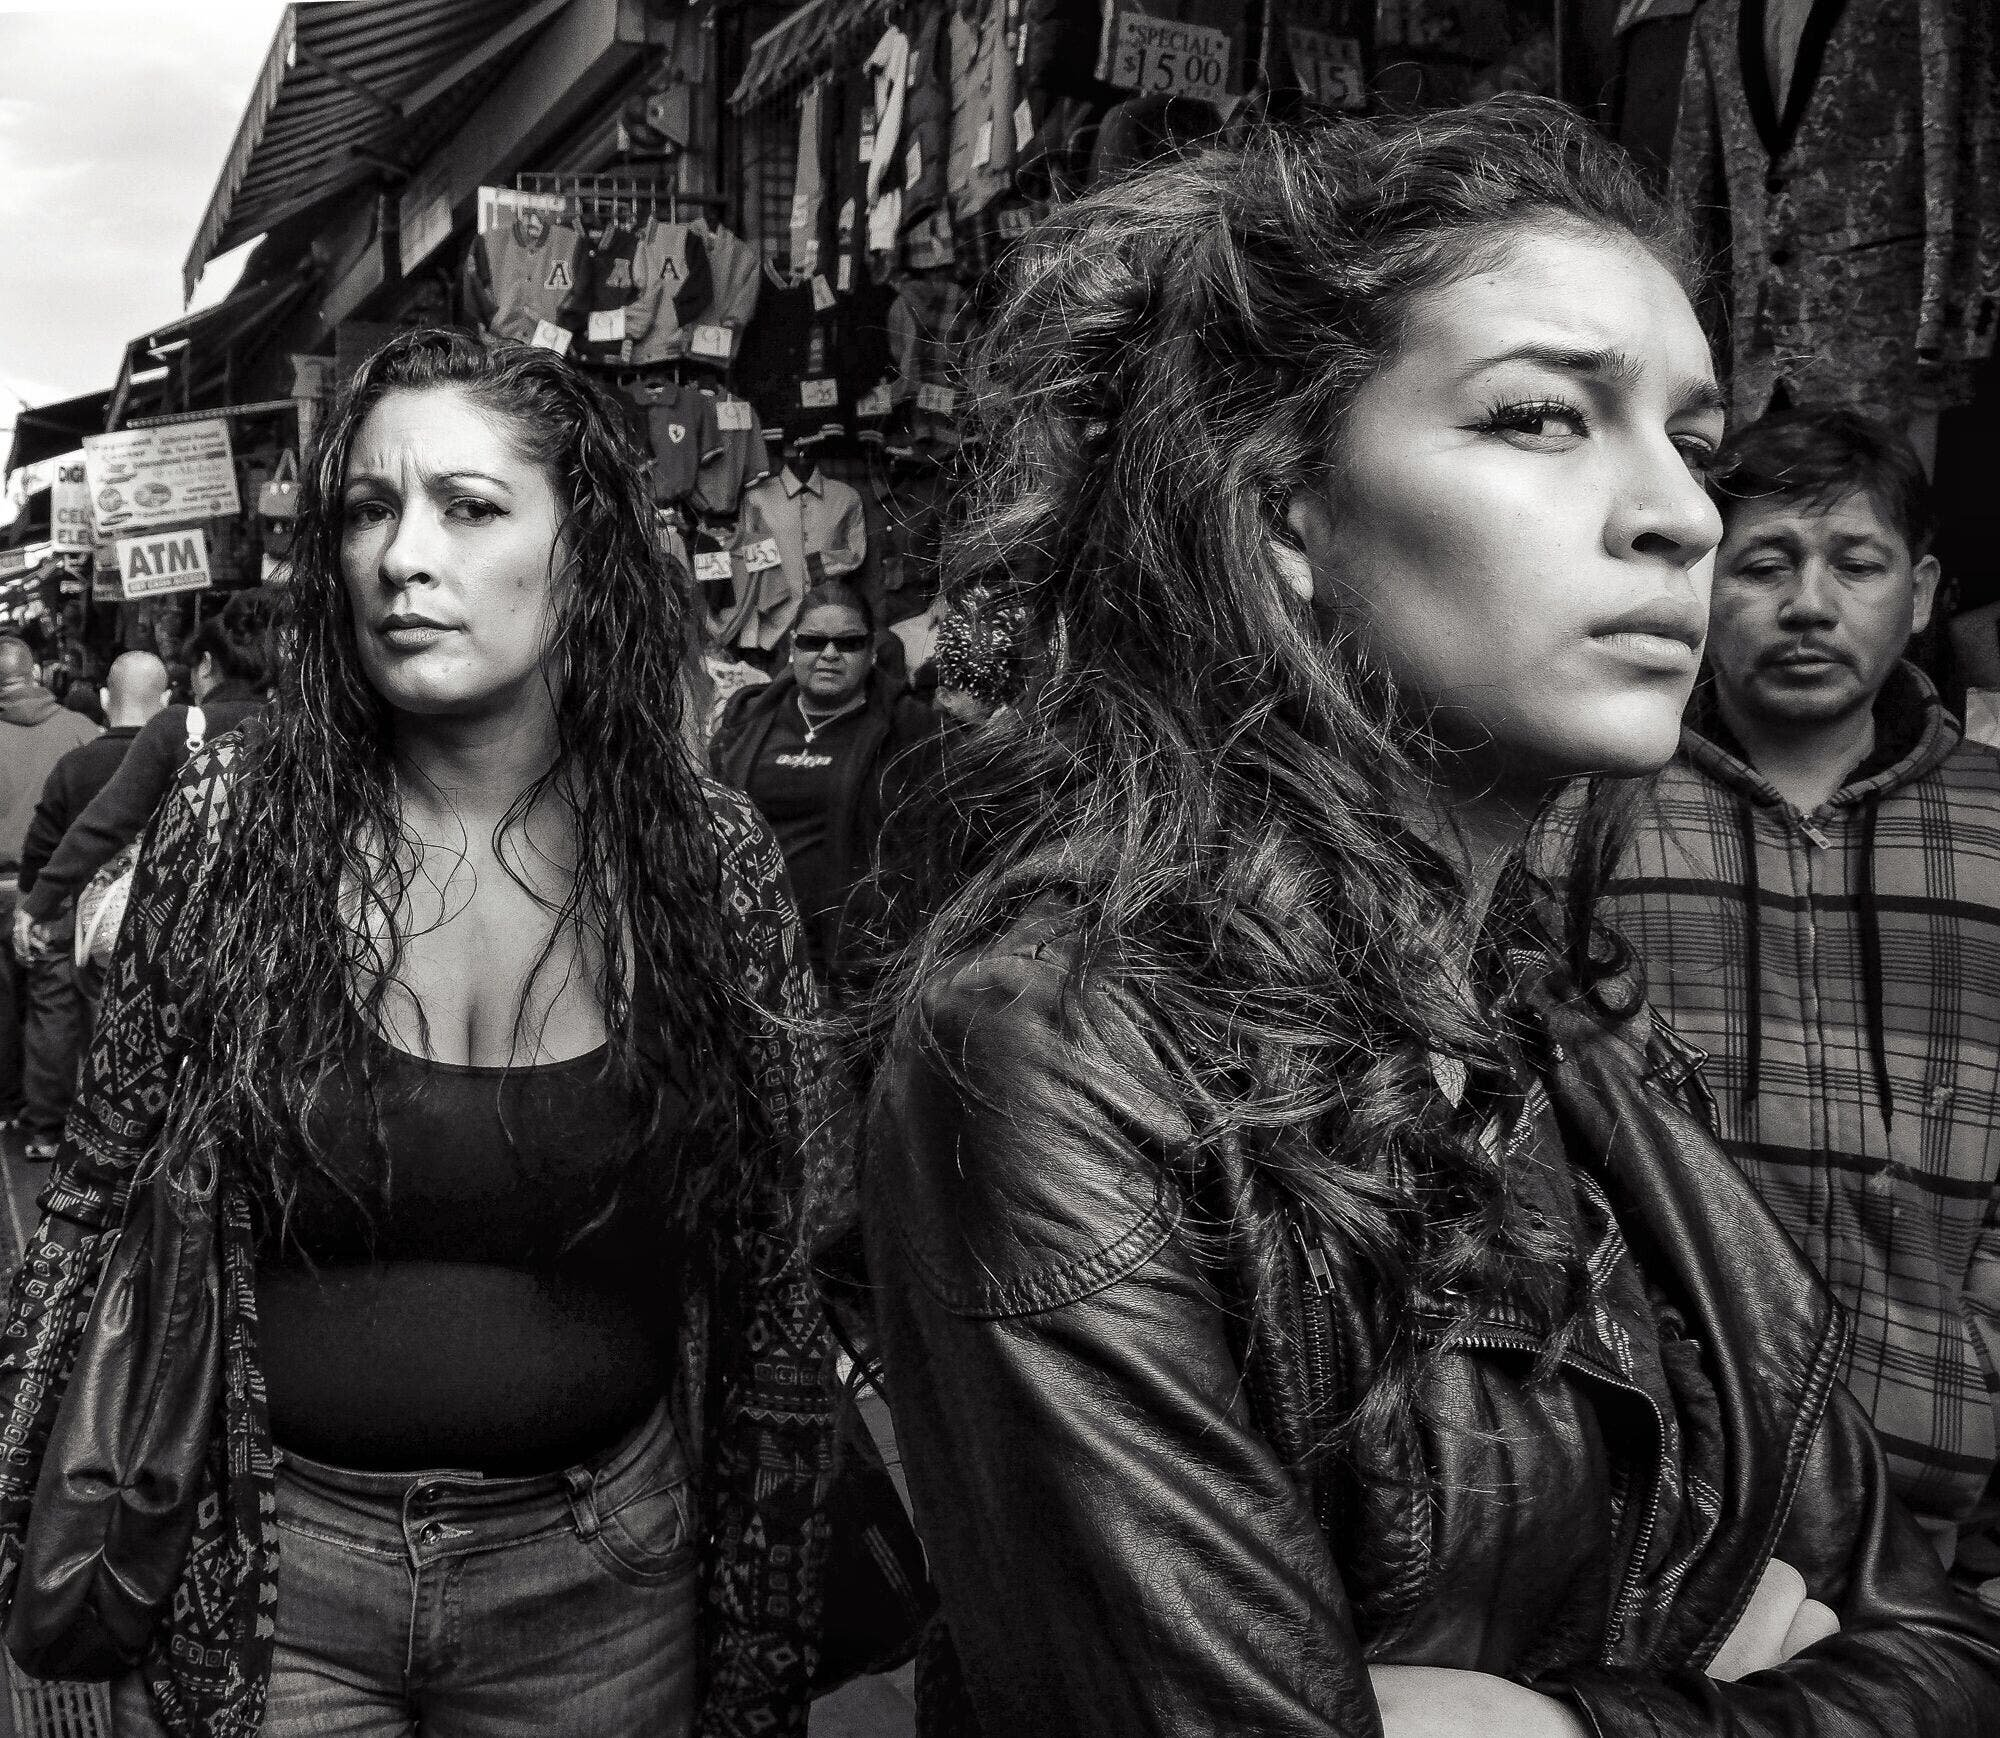 Street Photographers Share Stories Of Confrontation (And Overcoming It)